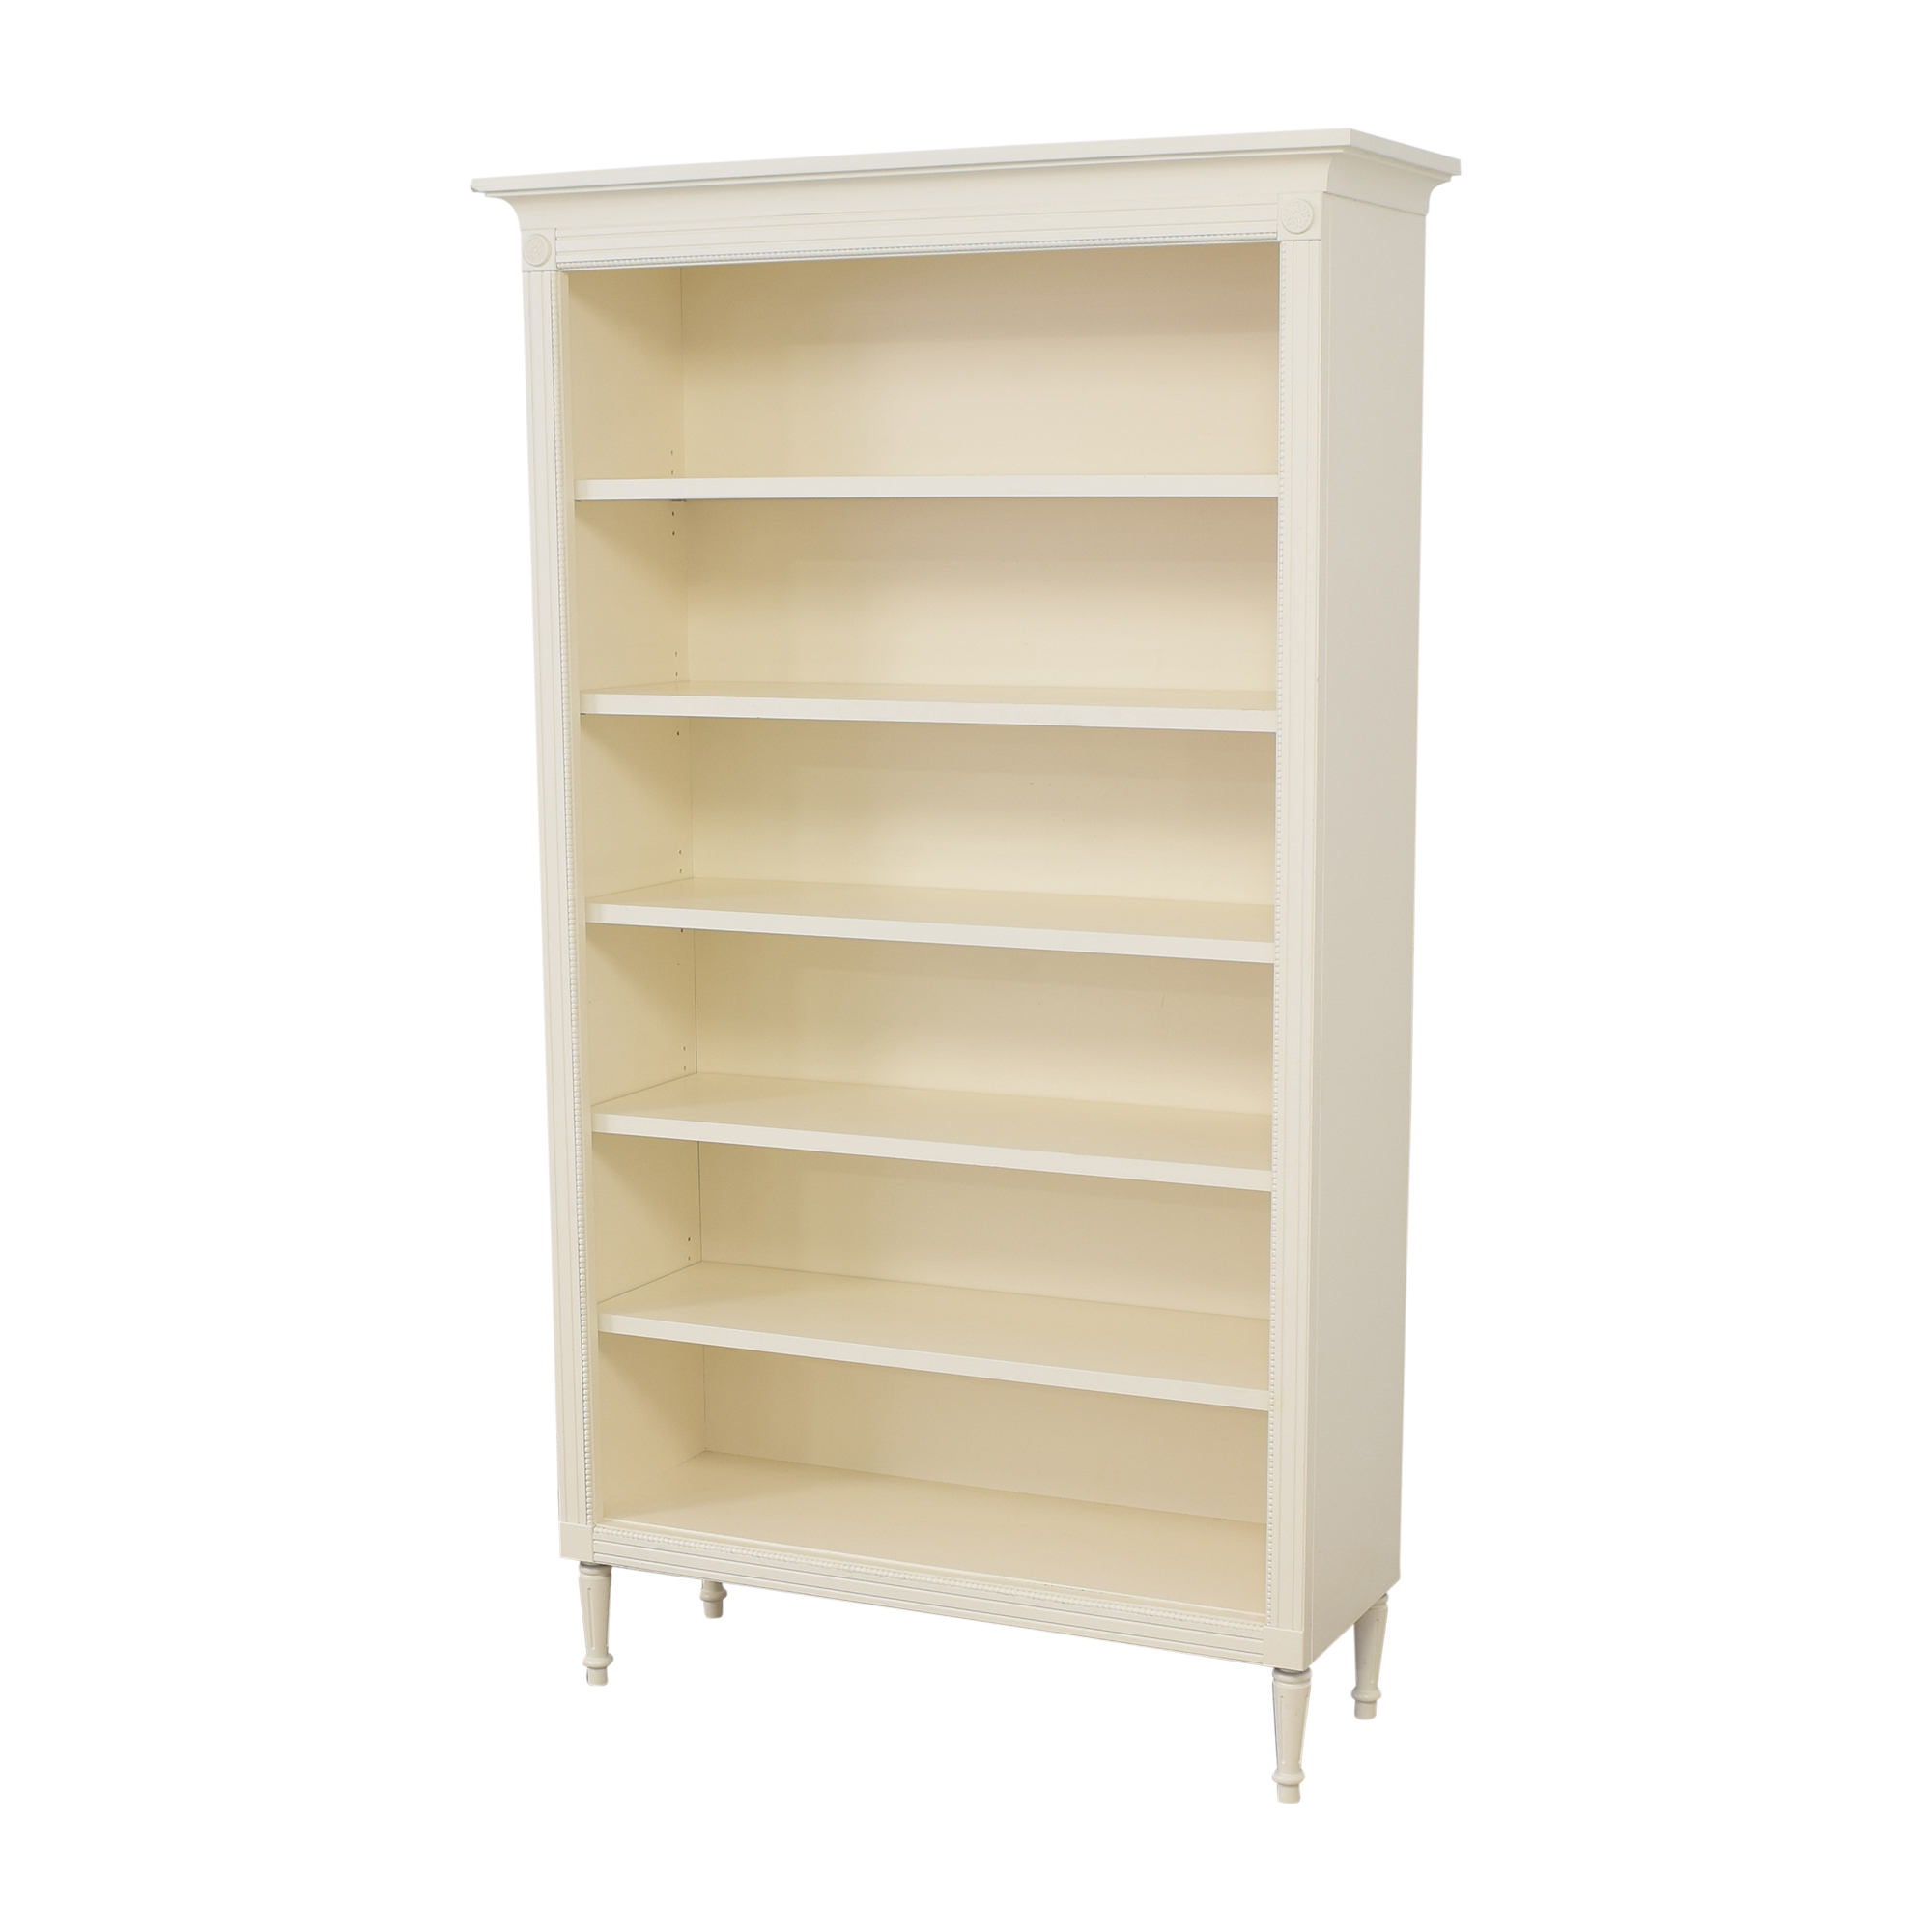 Classic-Style Bookcase used